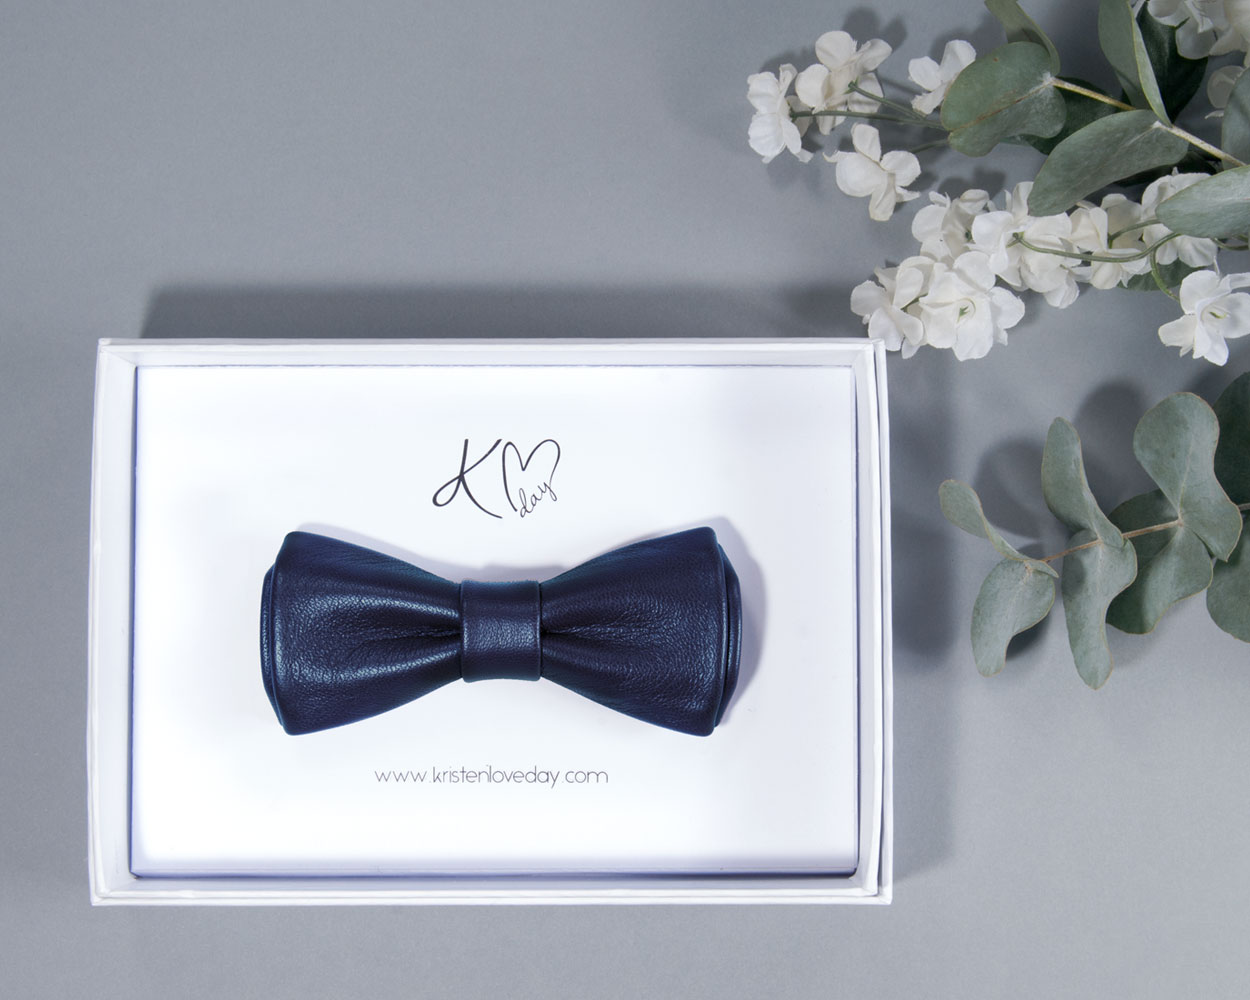 Petrol Narrow Metallic Leather Bow Tie inside it's box